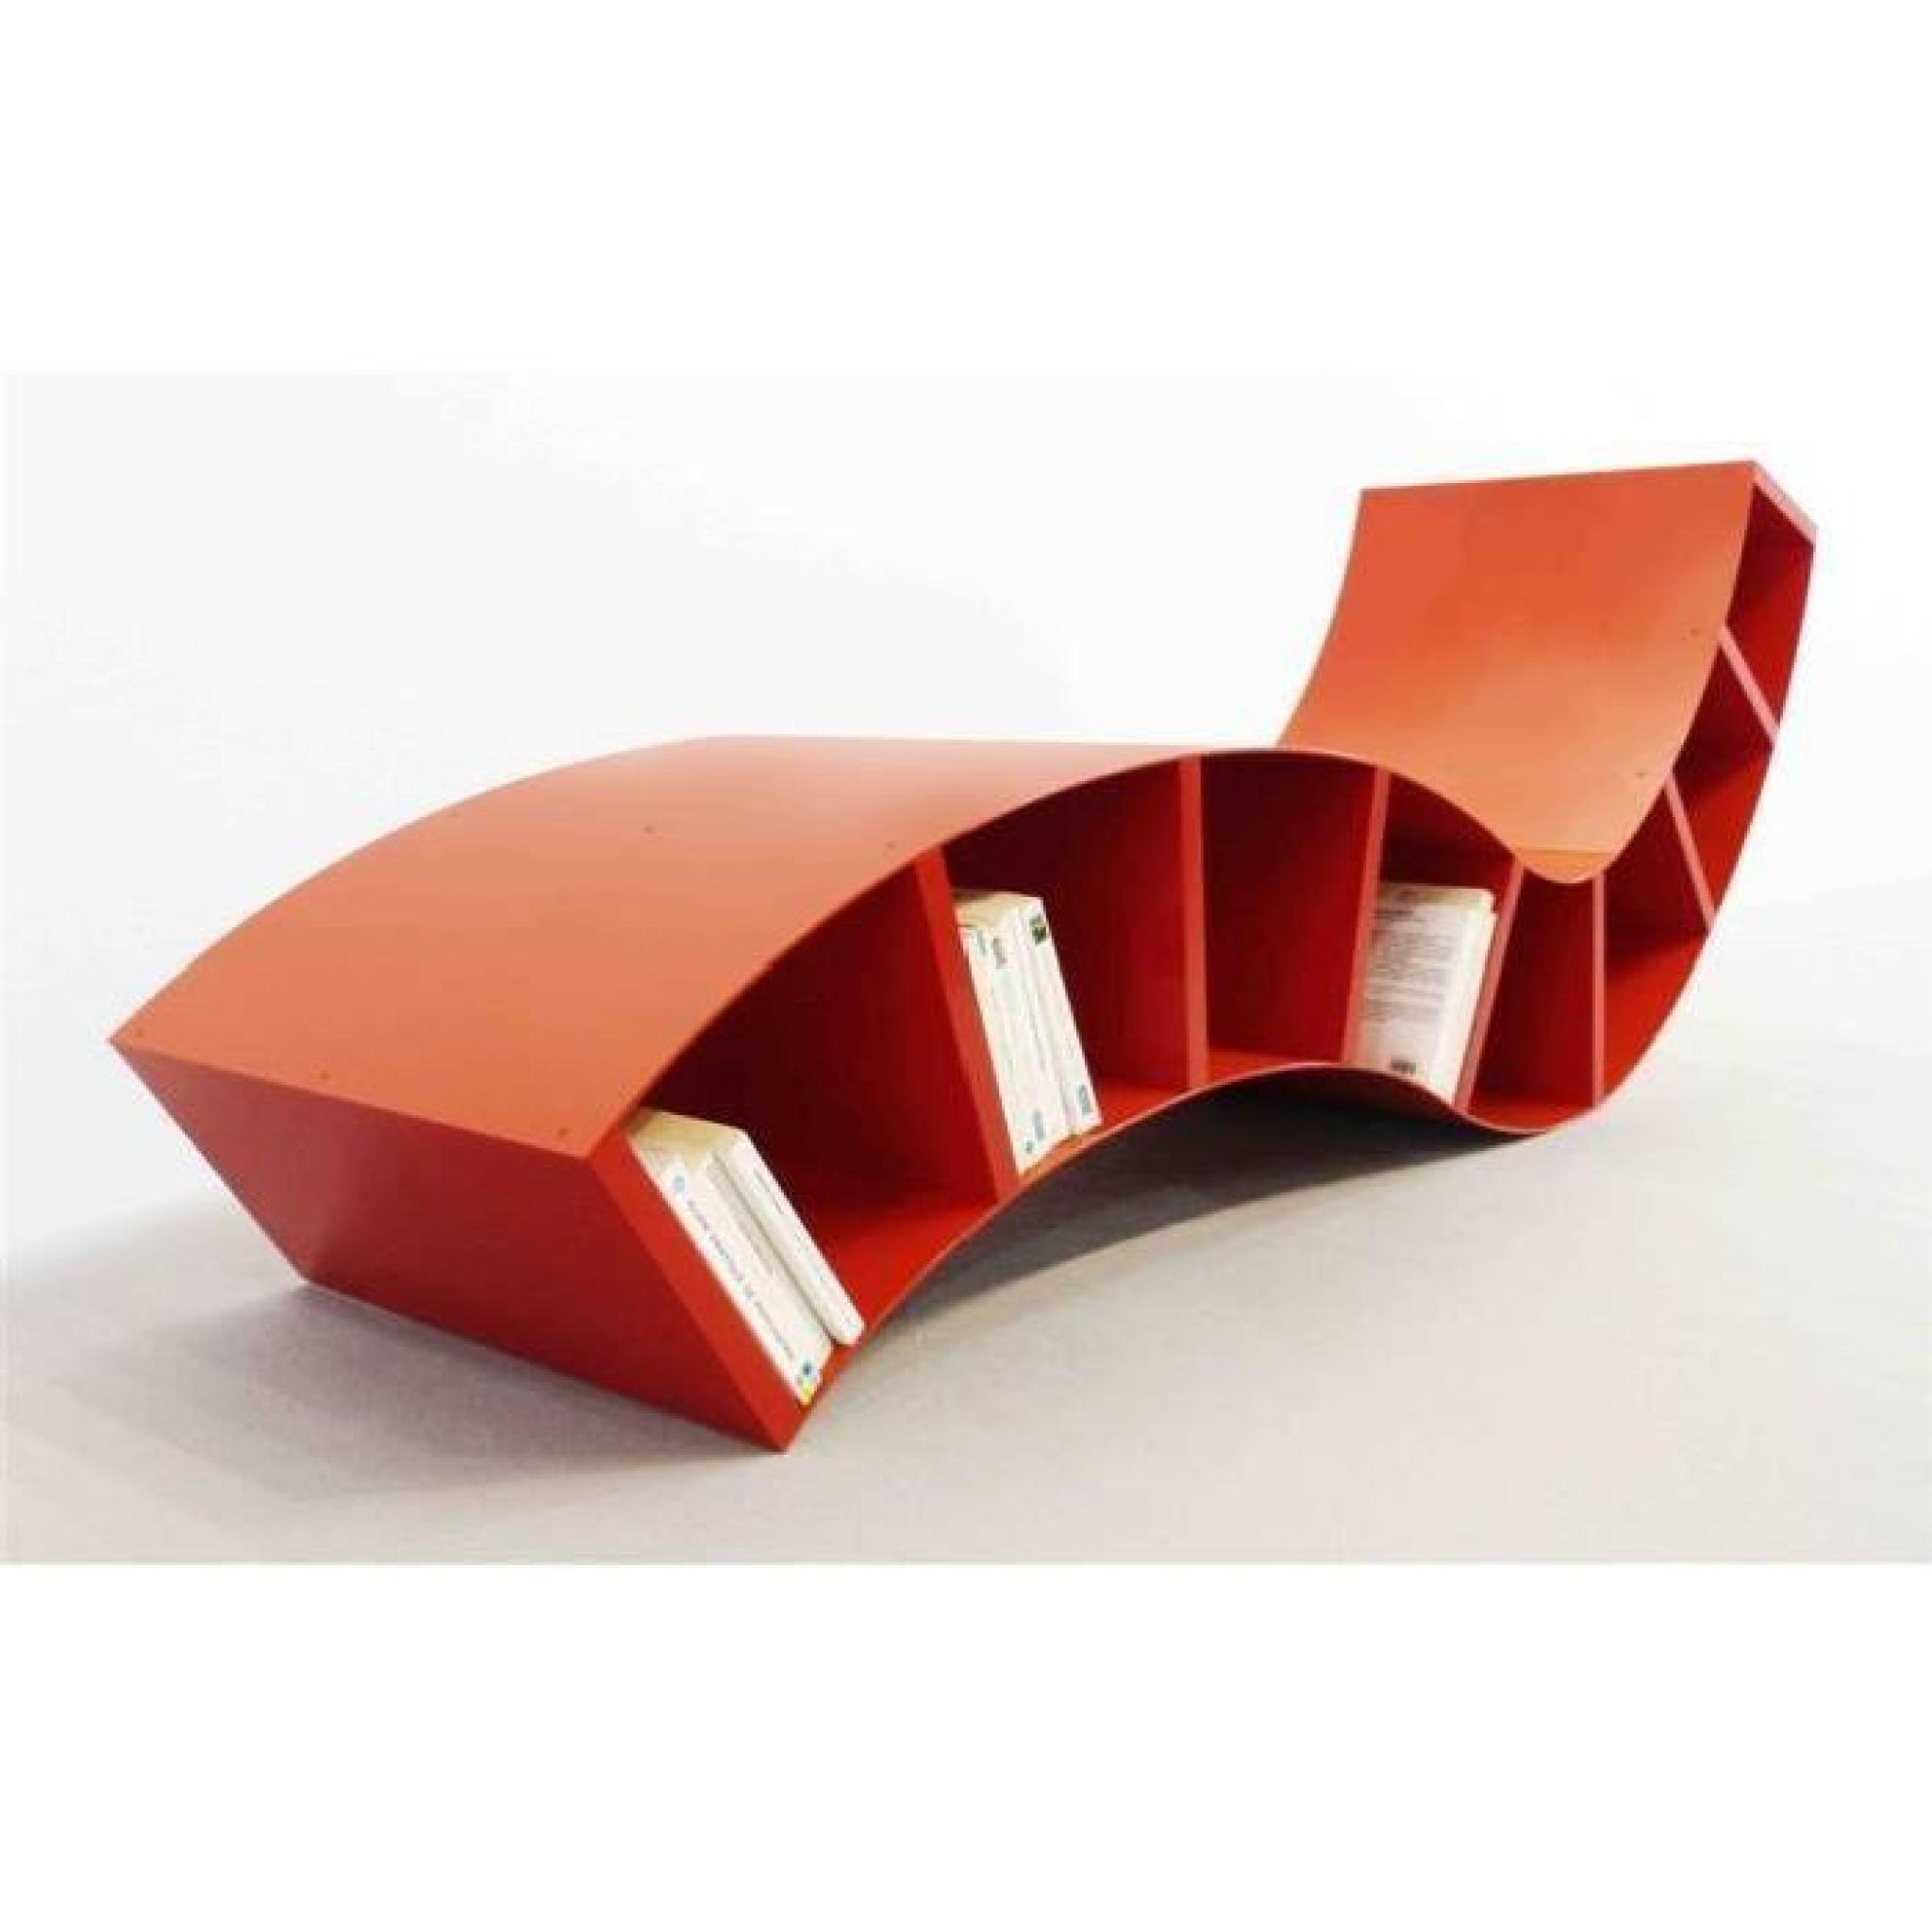 Chaise Chaise Longue Longue Rouge Chaise Design Boabook Boabook Rouge Design J5TK1cu3lF